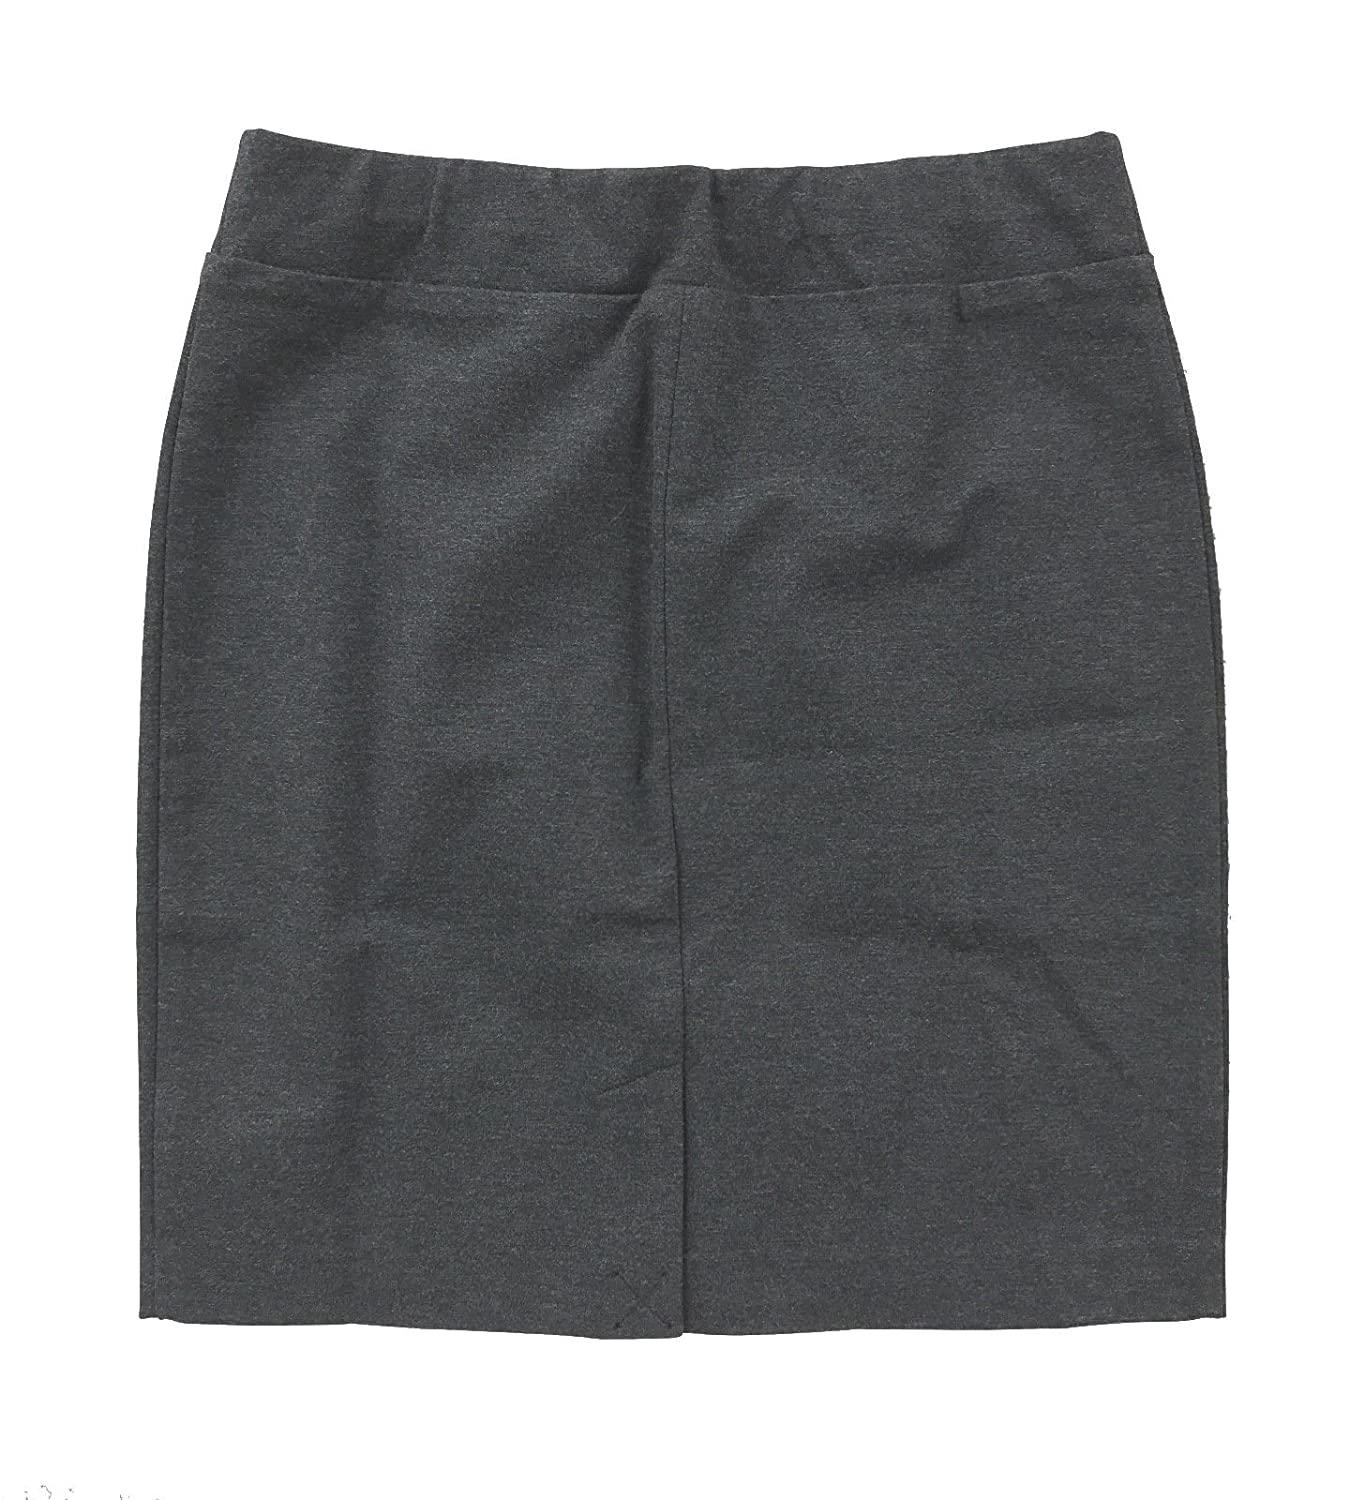 a5198c9144 J Jill Women's - Seamed Ponte Knit Pull-On Pencil Skirt (X-Large, Charcoal  Gray) at Amazon Women's Clothing store: